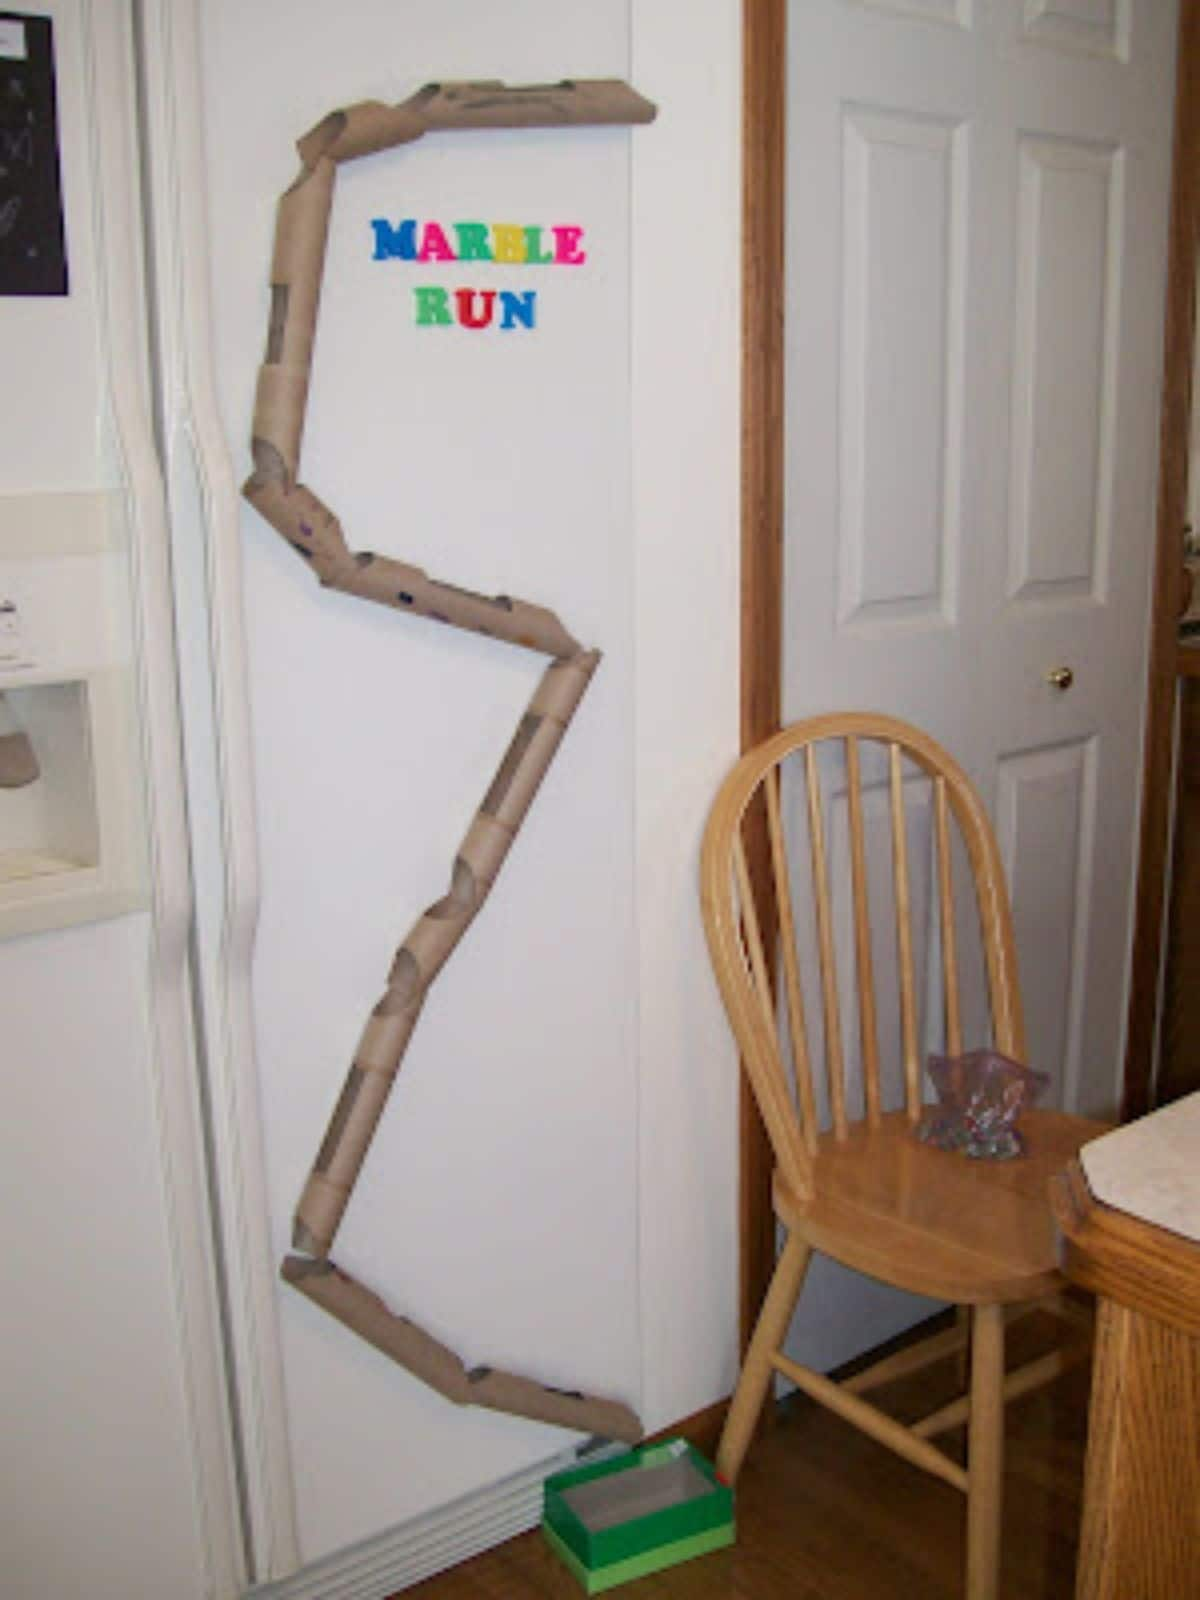 a marble run has been fixed to a wall in a room made of cardboard tubes